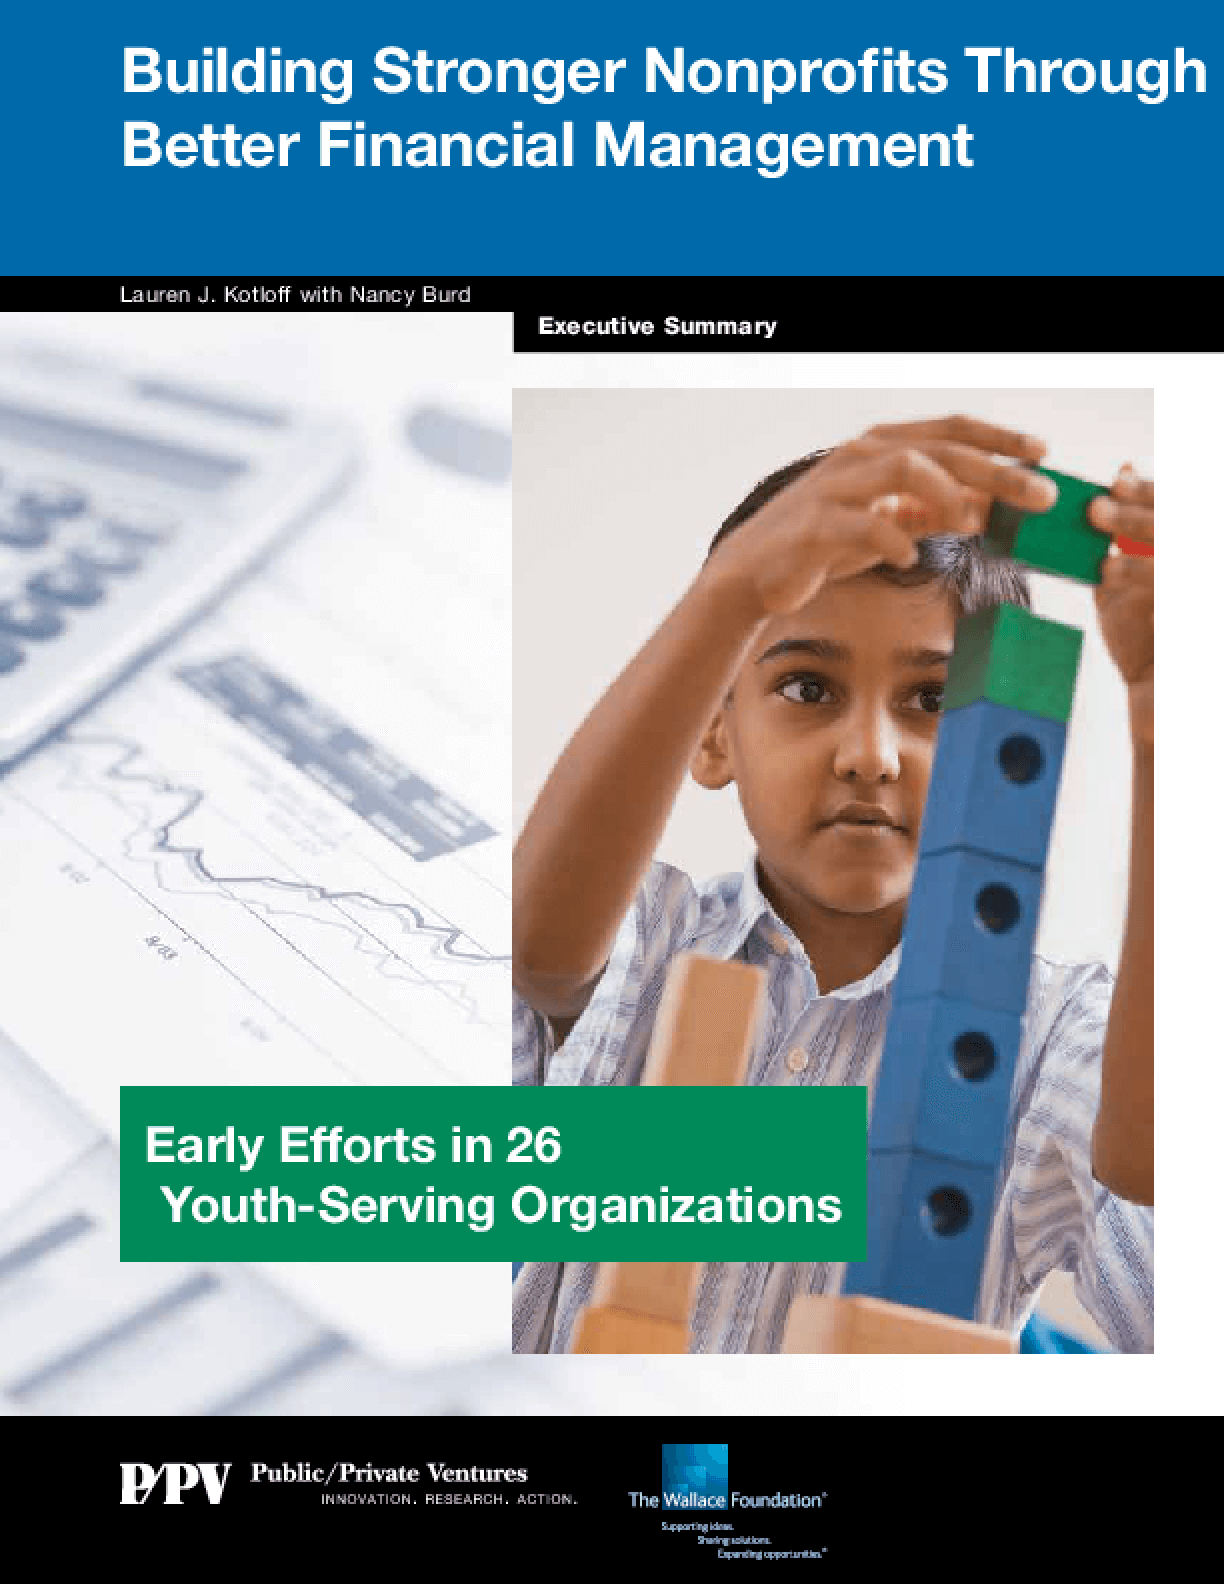 Building Stronger Nonprofits Through Better Financial Management, Executive Summary